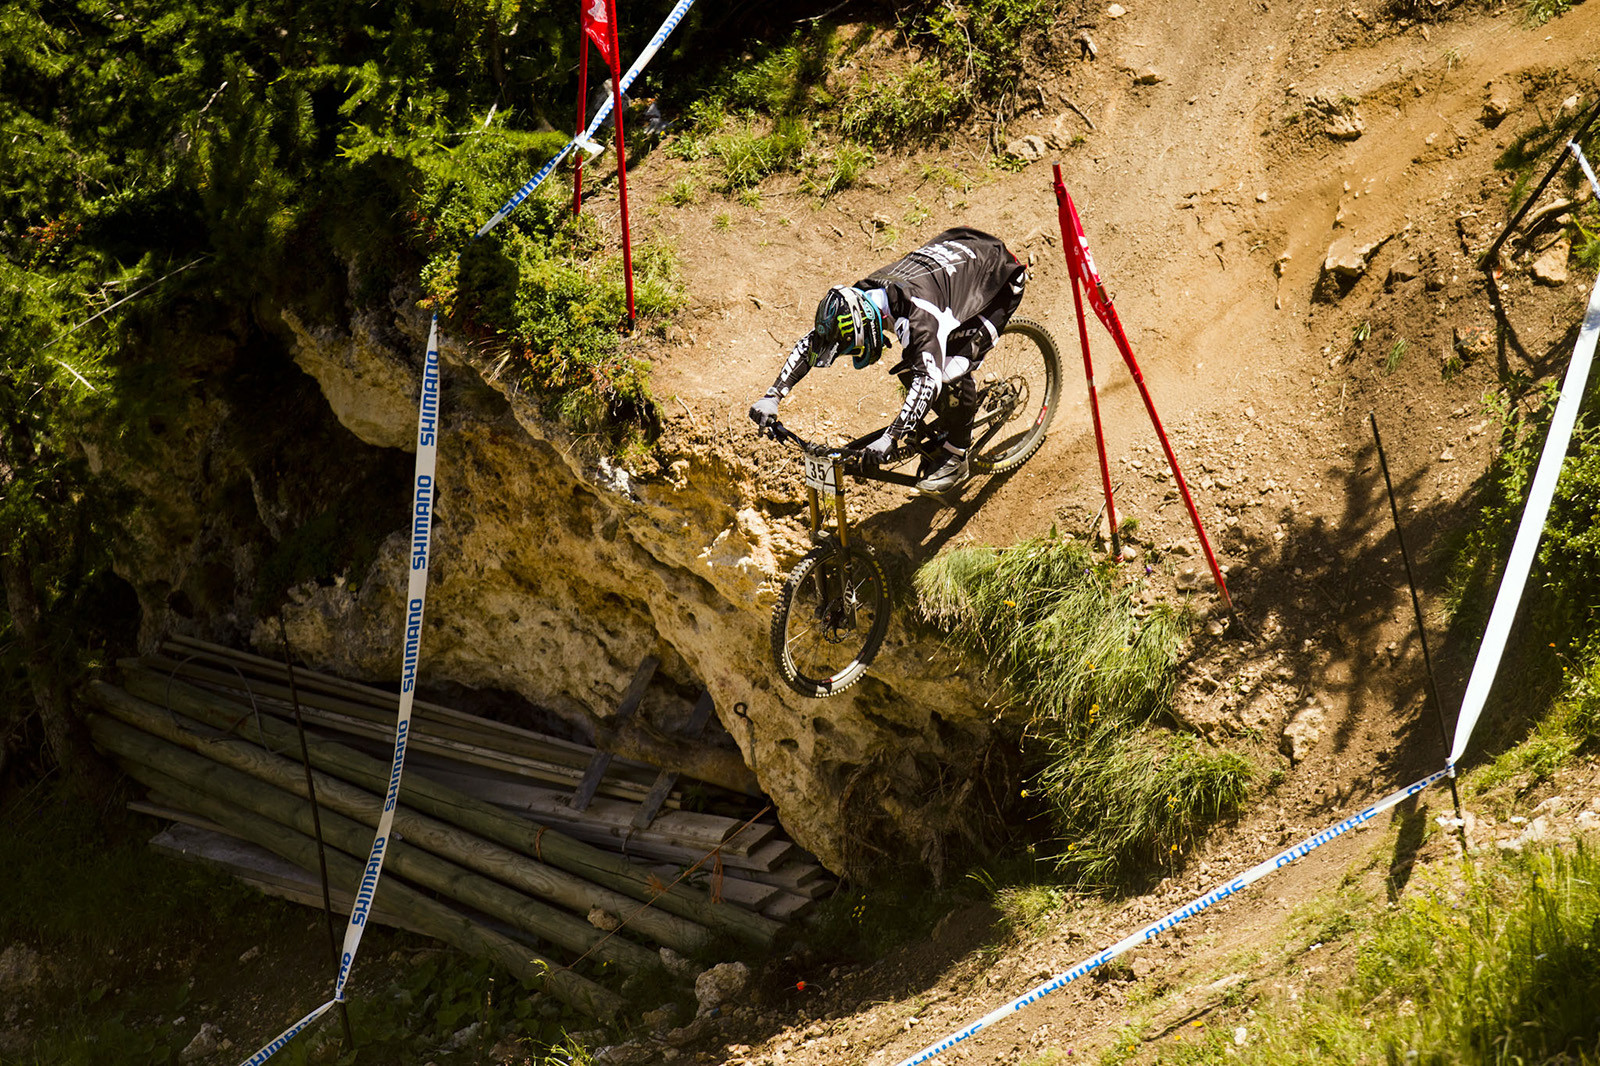 Jared Graves Drops at Val d'Isere - 2012 UCI World Cup, Val d'Isere, France, Day 2 - Mountain Biking Pictures - Vital MTB